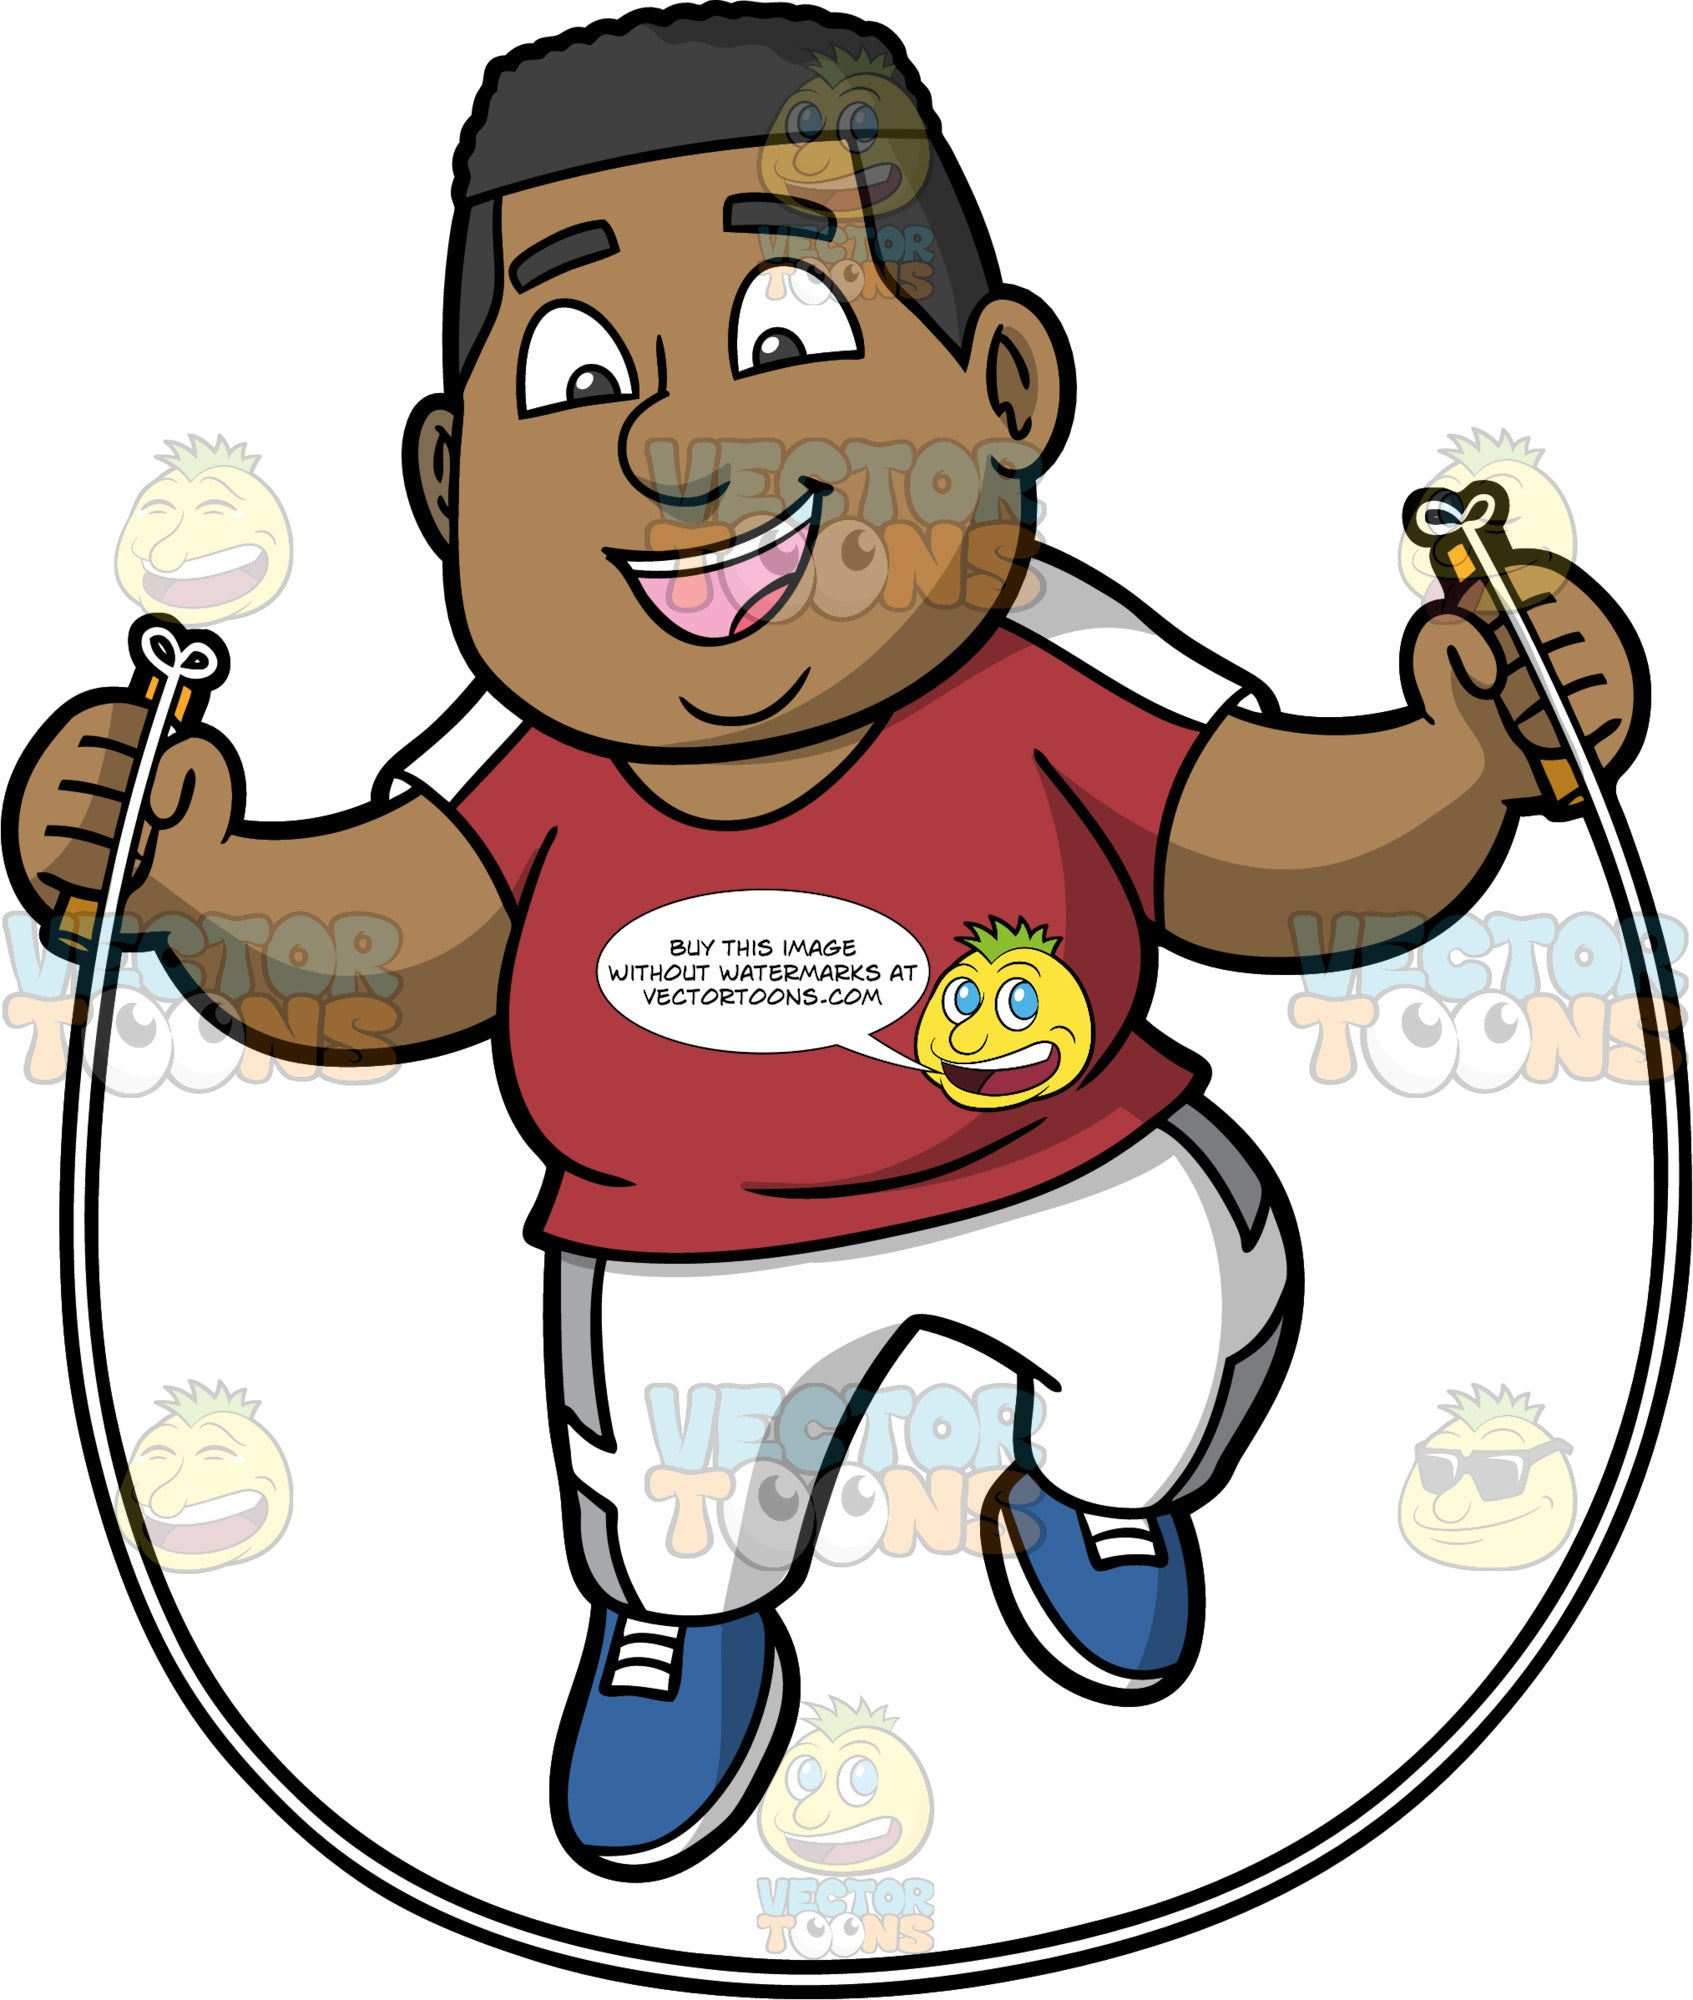 James Having Fun Skipping. A black man wearing white track pants, a burgundy with white t-shirt, and blue running shoes, smiling as he jumps over a skipping rope